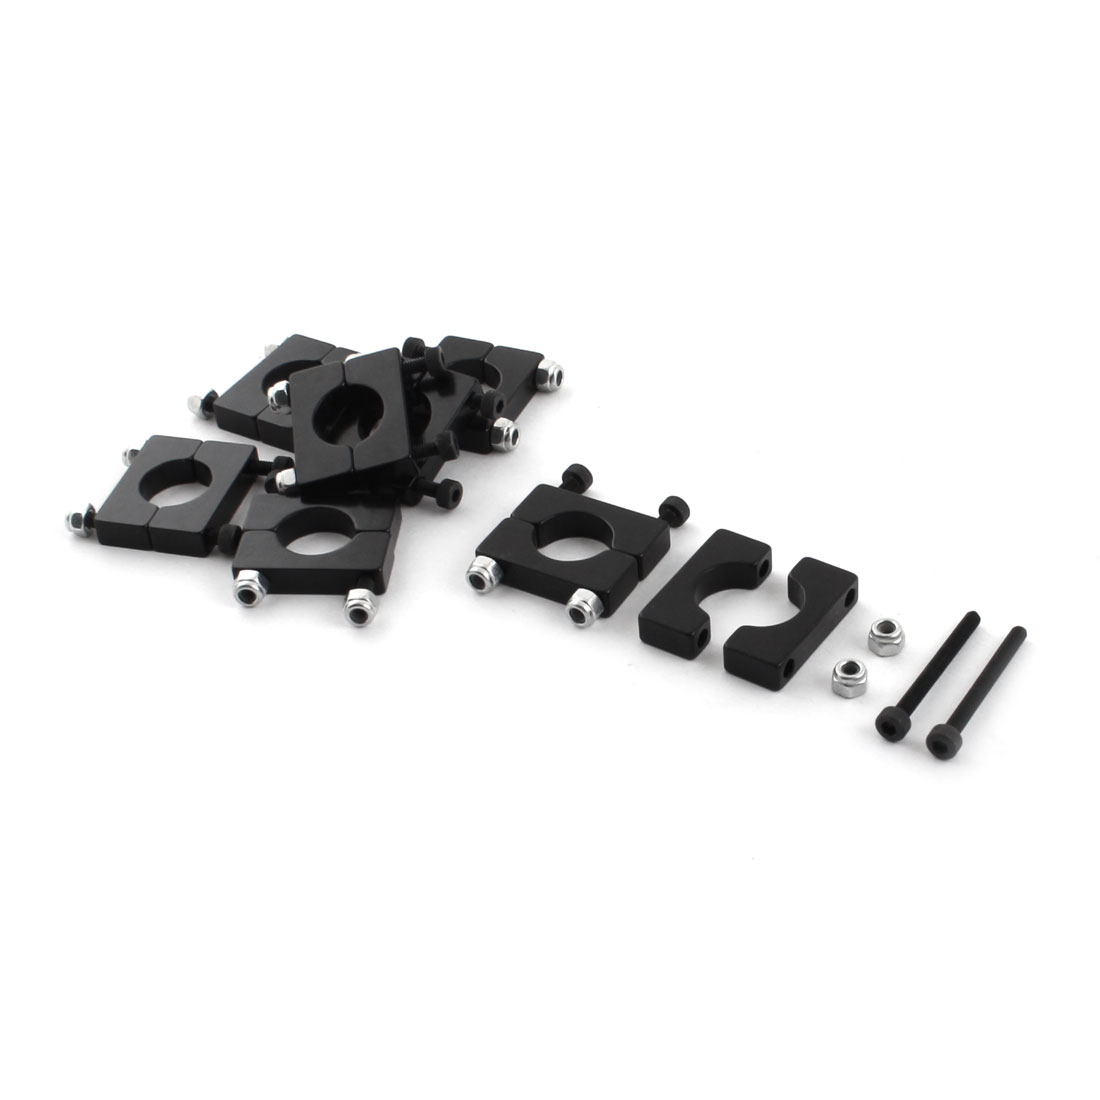 8 Pcs 12mm Black Aluminum Clamp for Carbon Fiber Tube RC Quadcopter Hexrcopter